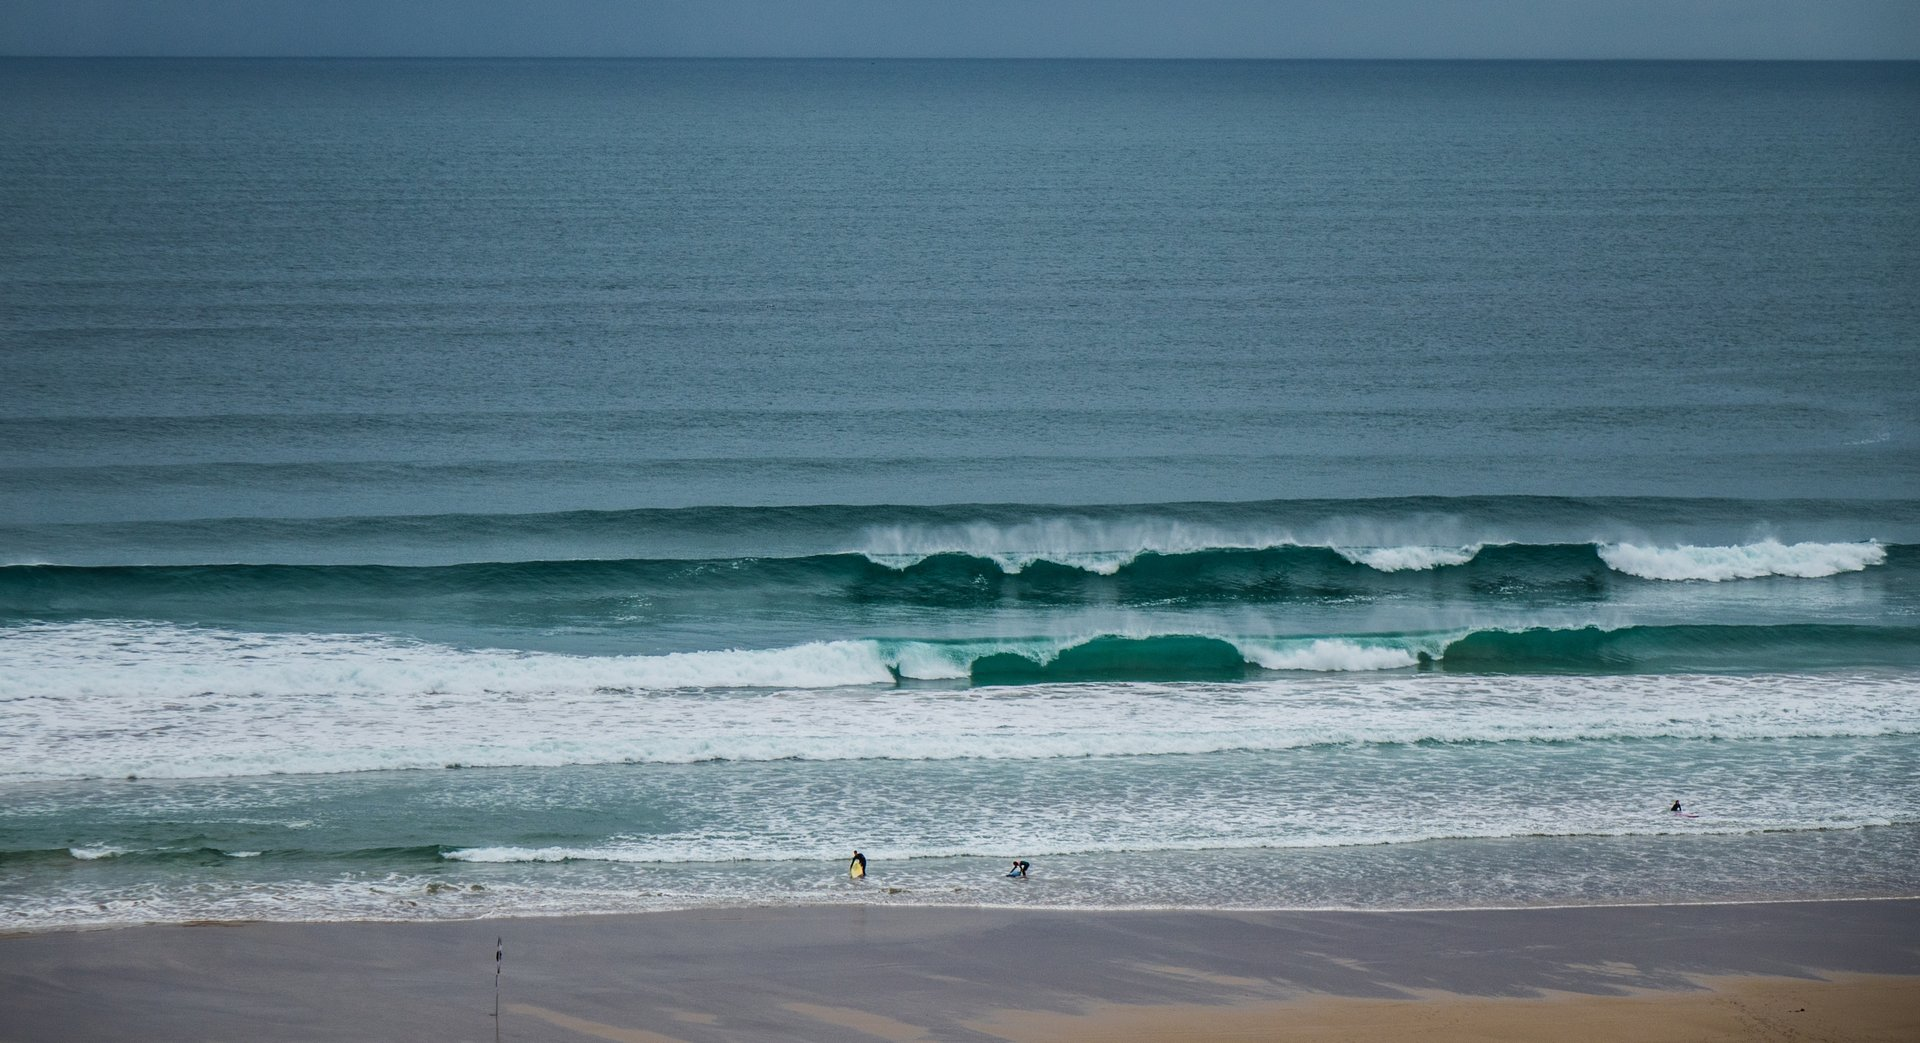 andy's photo of Watergate Bay